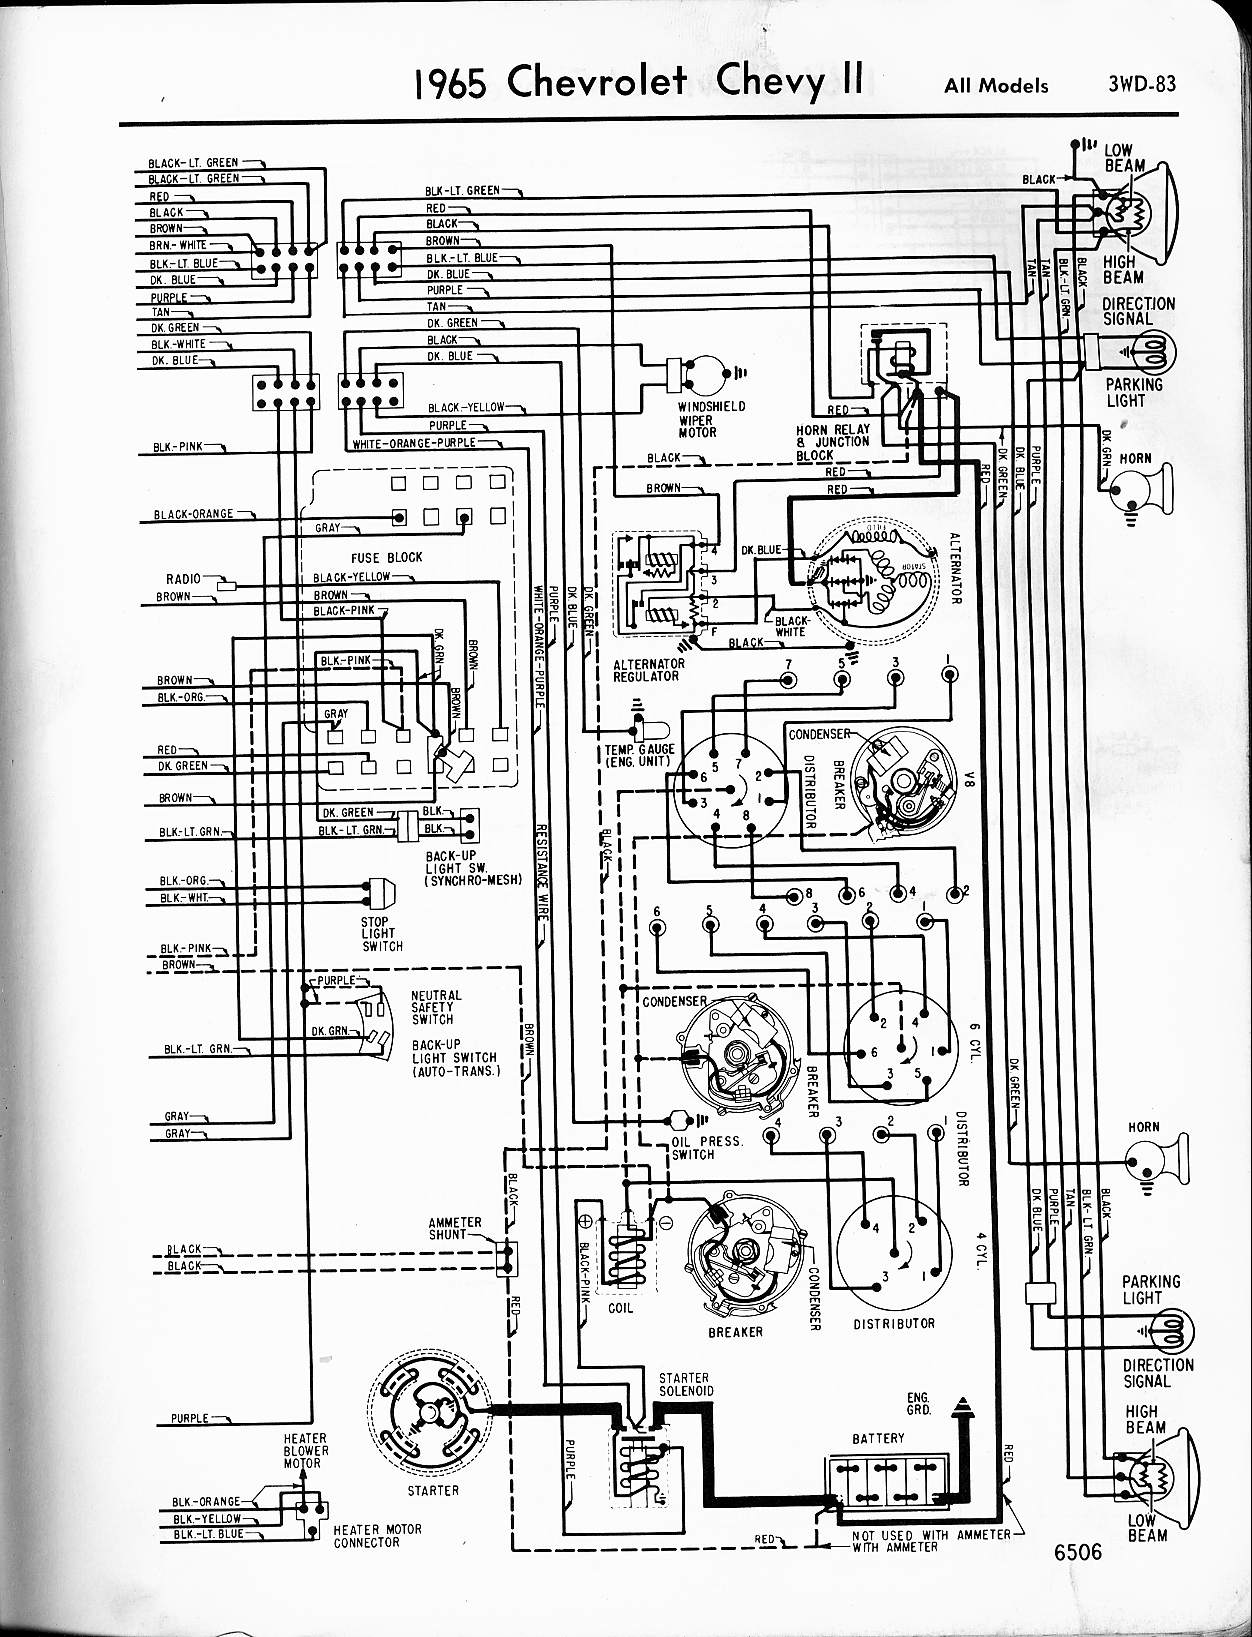 MWireChev65_3WD 083 chevy diagrams 1967 chevy ii wiring diagram at honlapkeszites.co